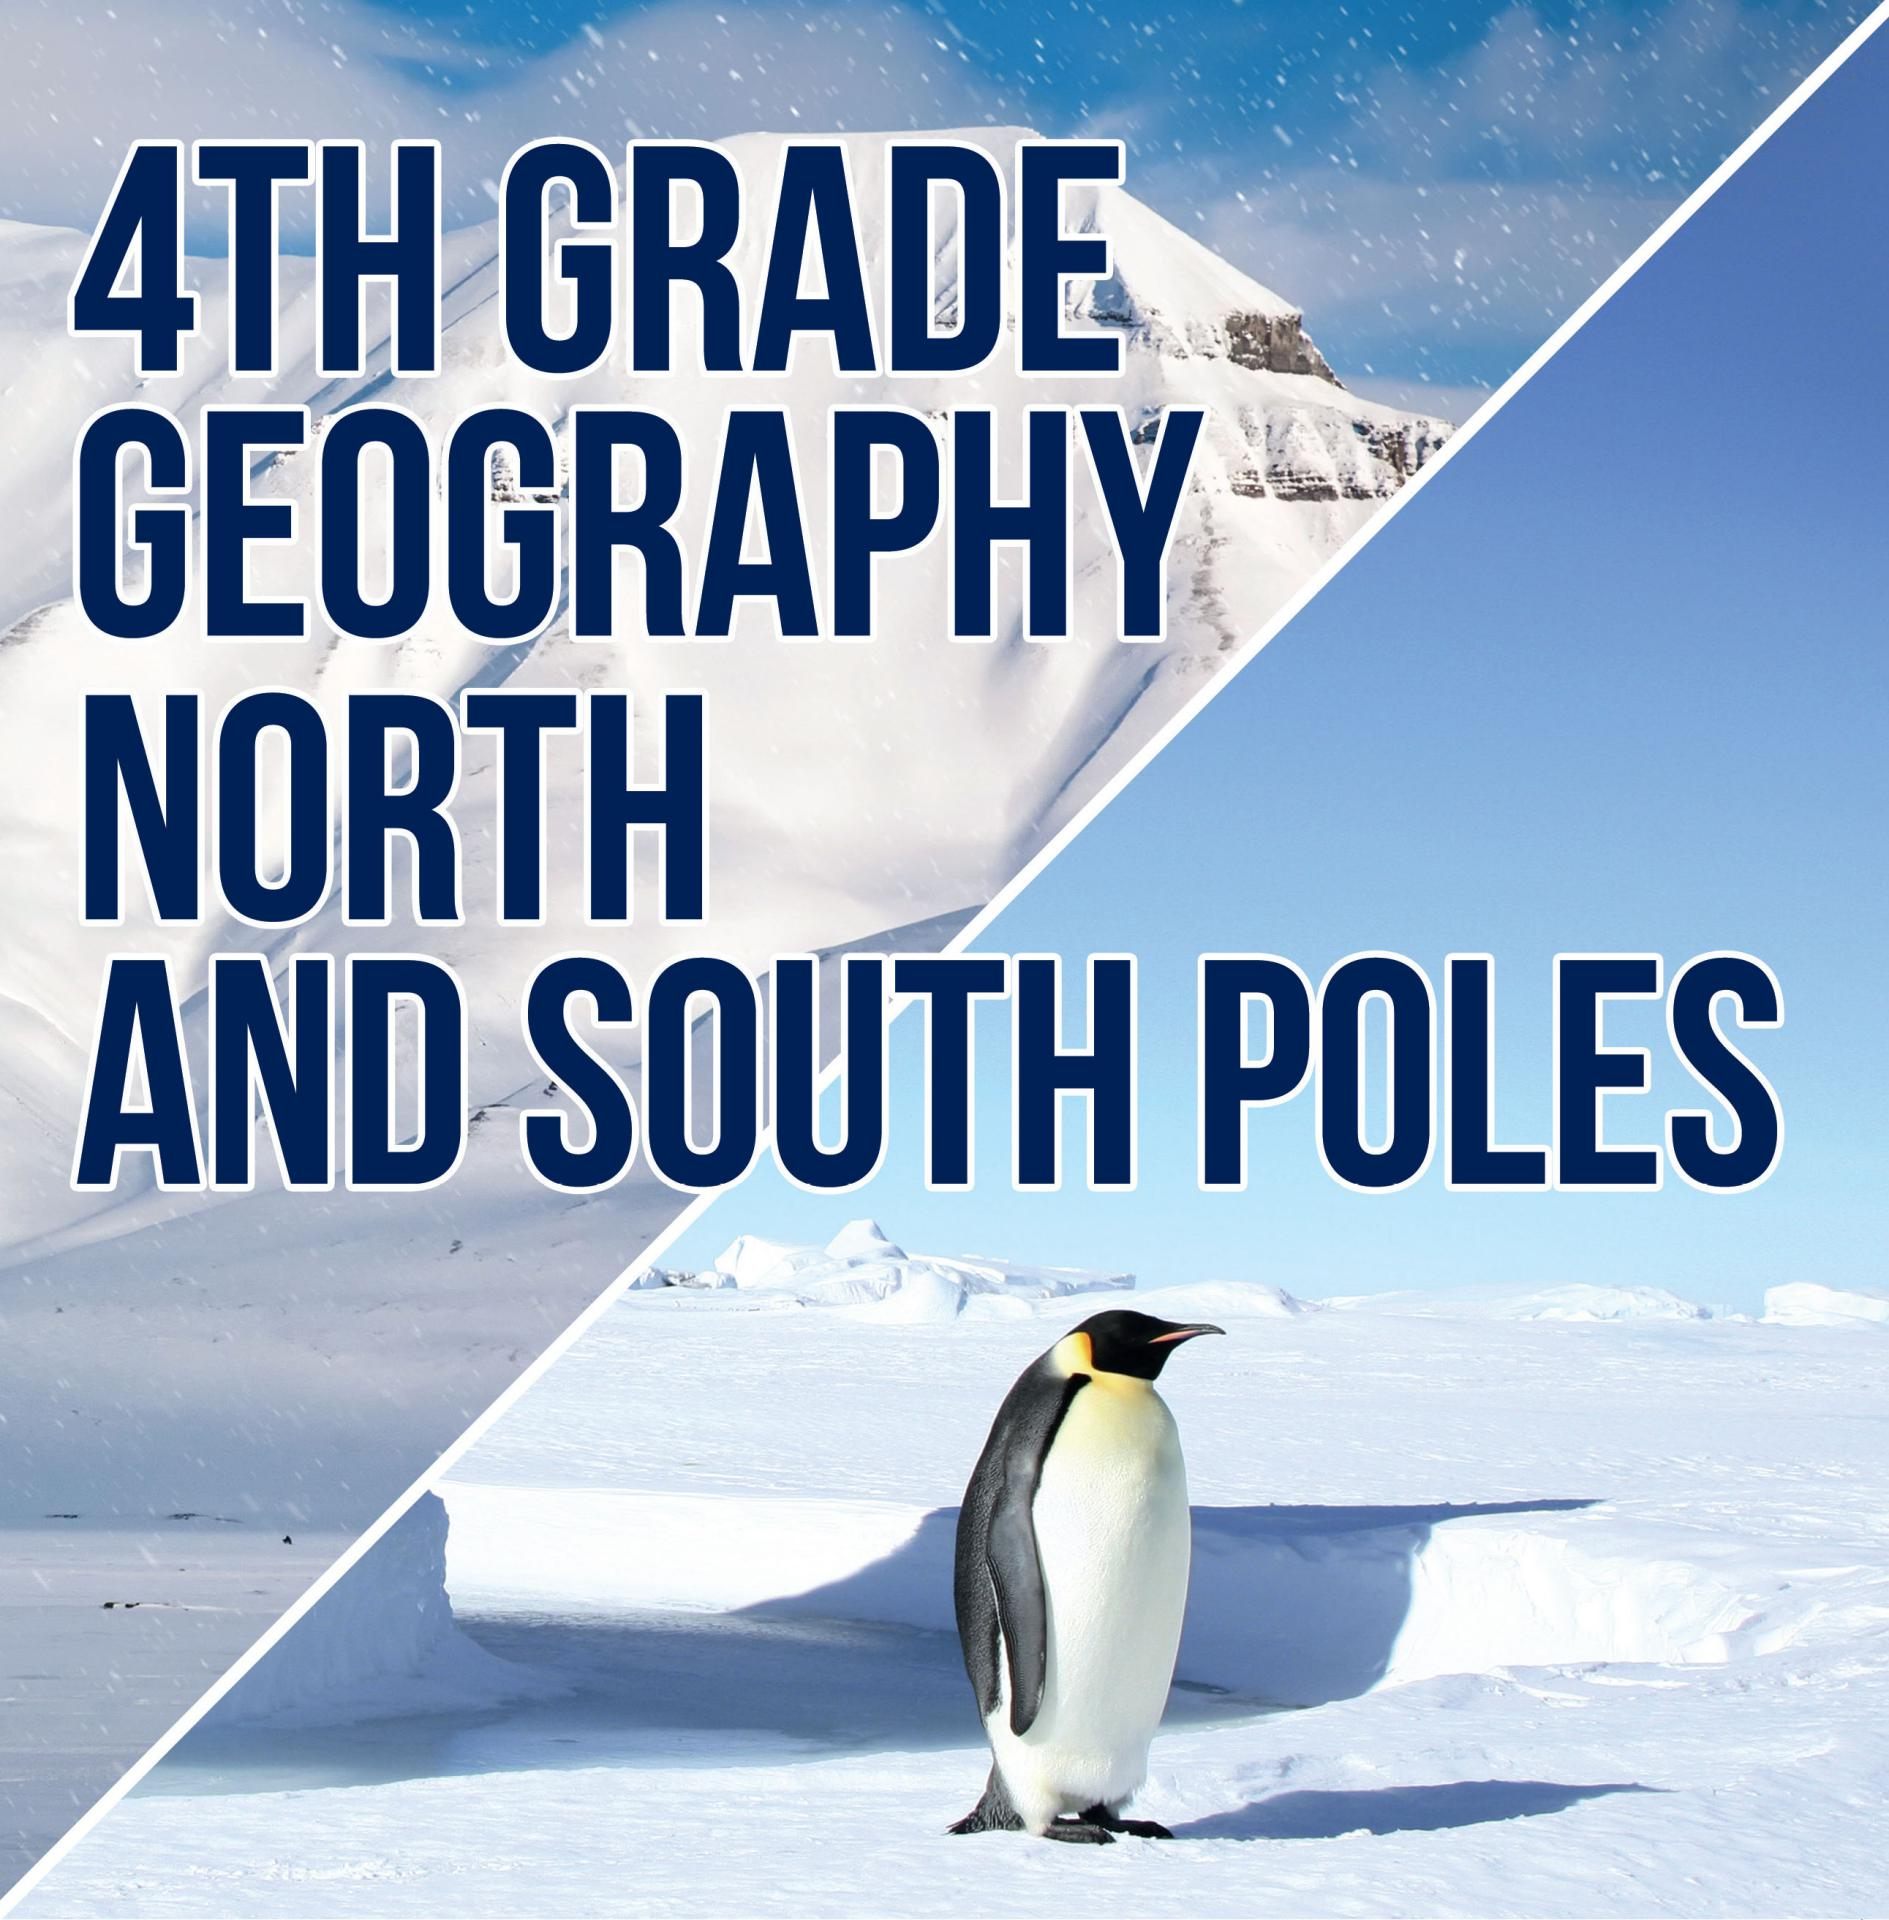 4th Grade Geography: North and South Poles Fourth Grade Books Polar Regions for Kids